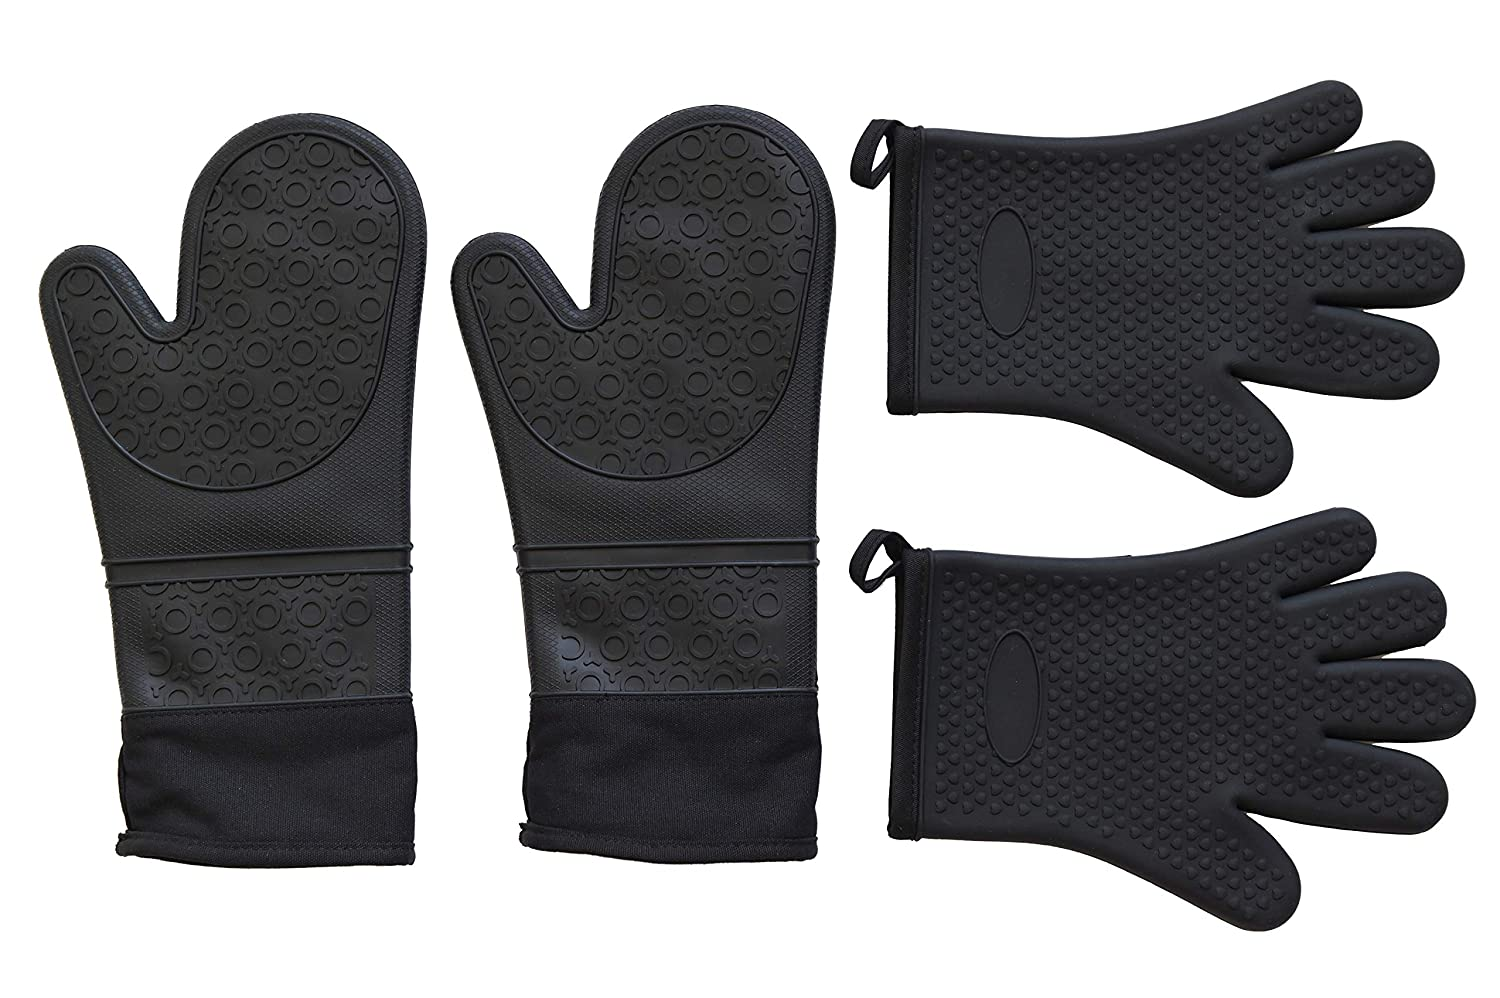 Q's INN Silicone Pot Holders with Quilted Liner Heavy Duty Heat Resistant -40°F - 460°F Non Slip Textured Grip Food Grade No Odor No Staining and 2 with one and 2 with 5 Fingers Oven Mitts Black.